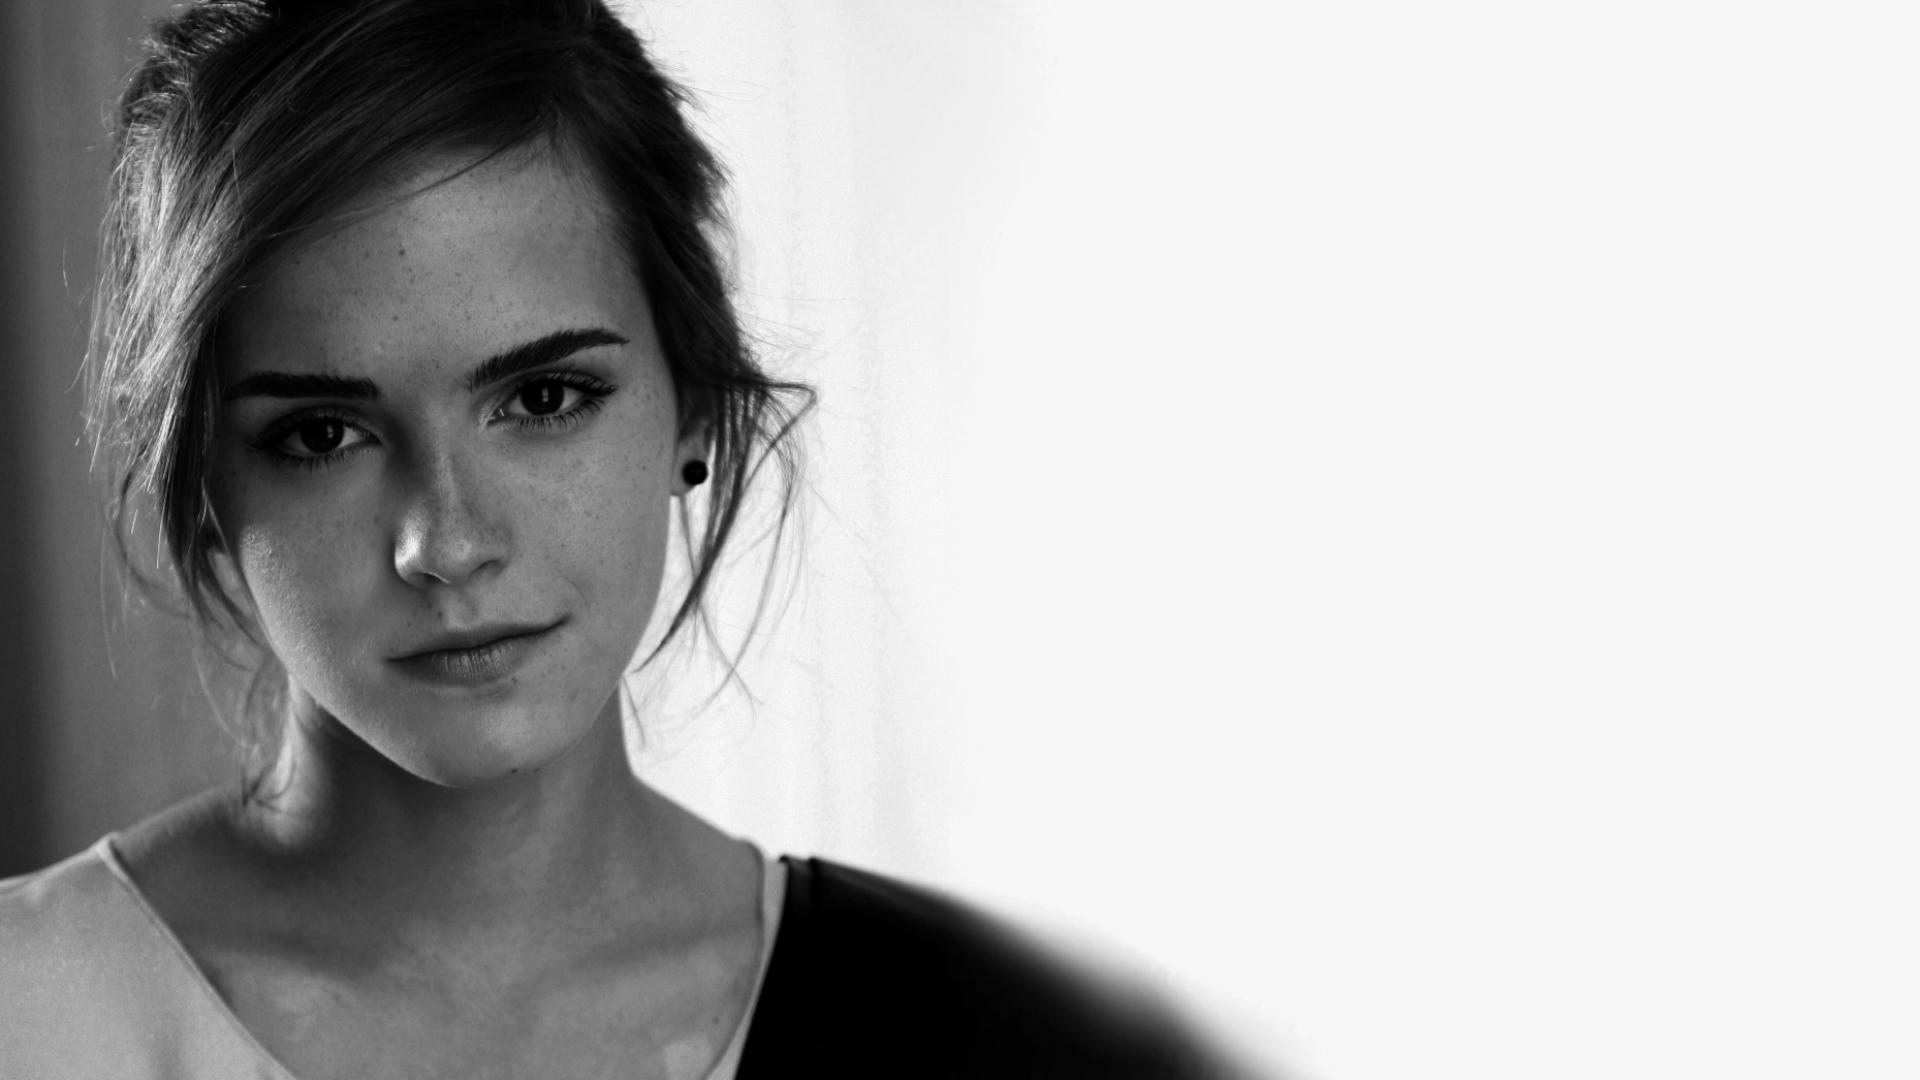 women Emma Watson actress freckles monochrome start - Wallpaper (#1136071) / Wallbase.cc